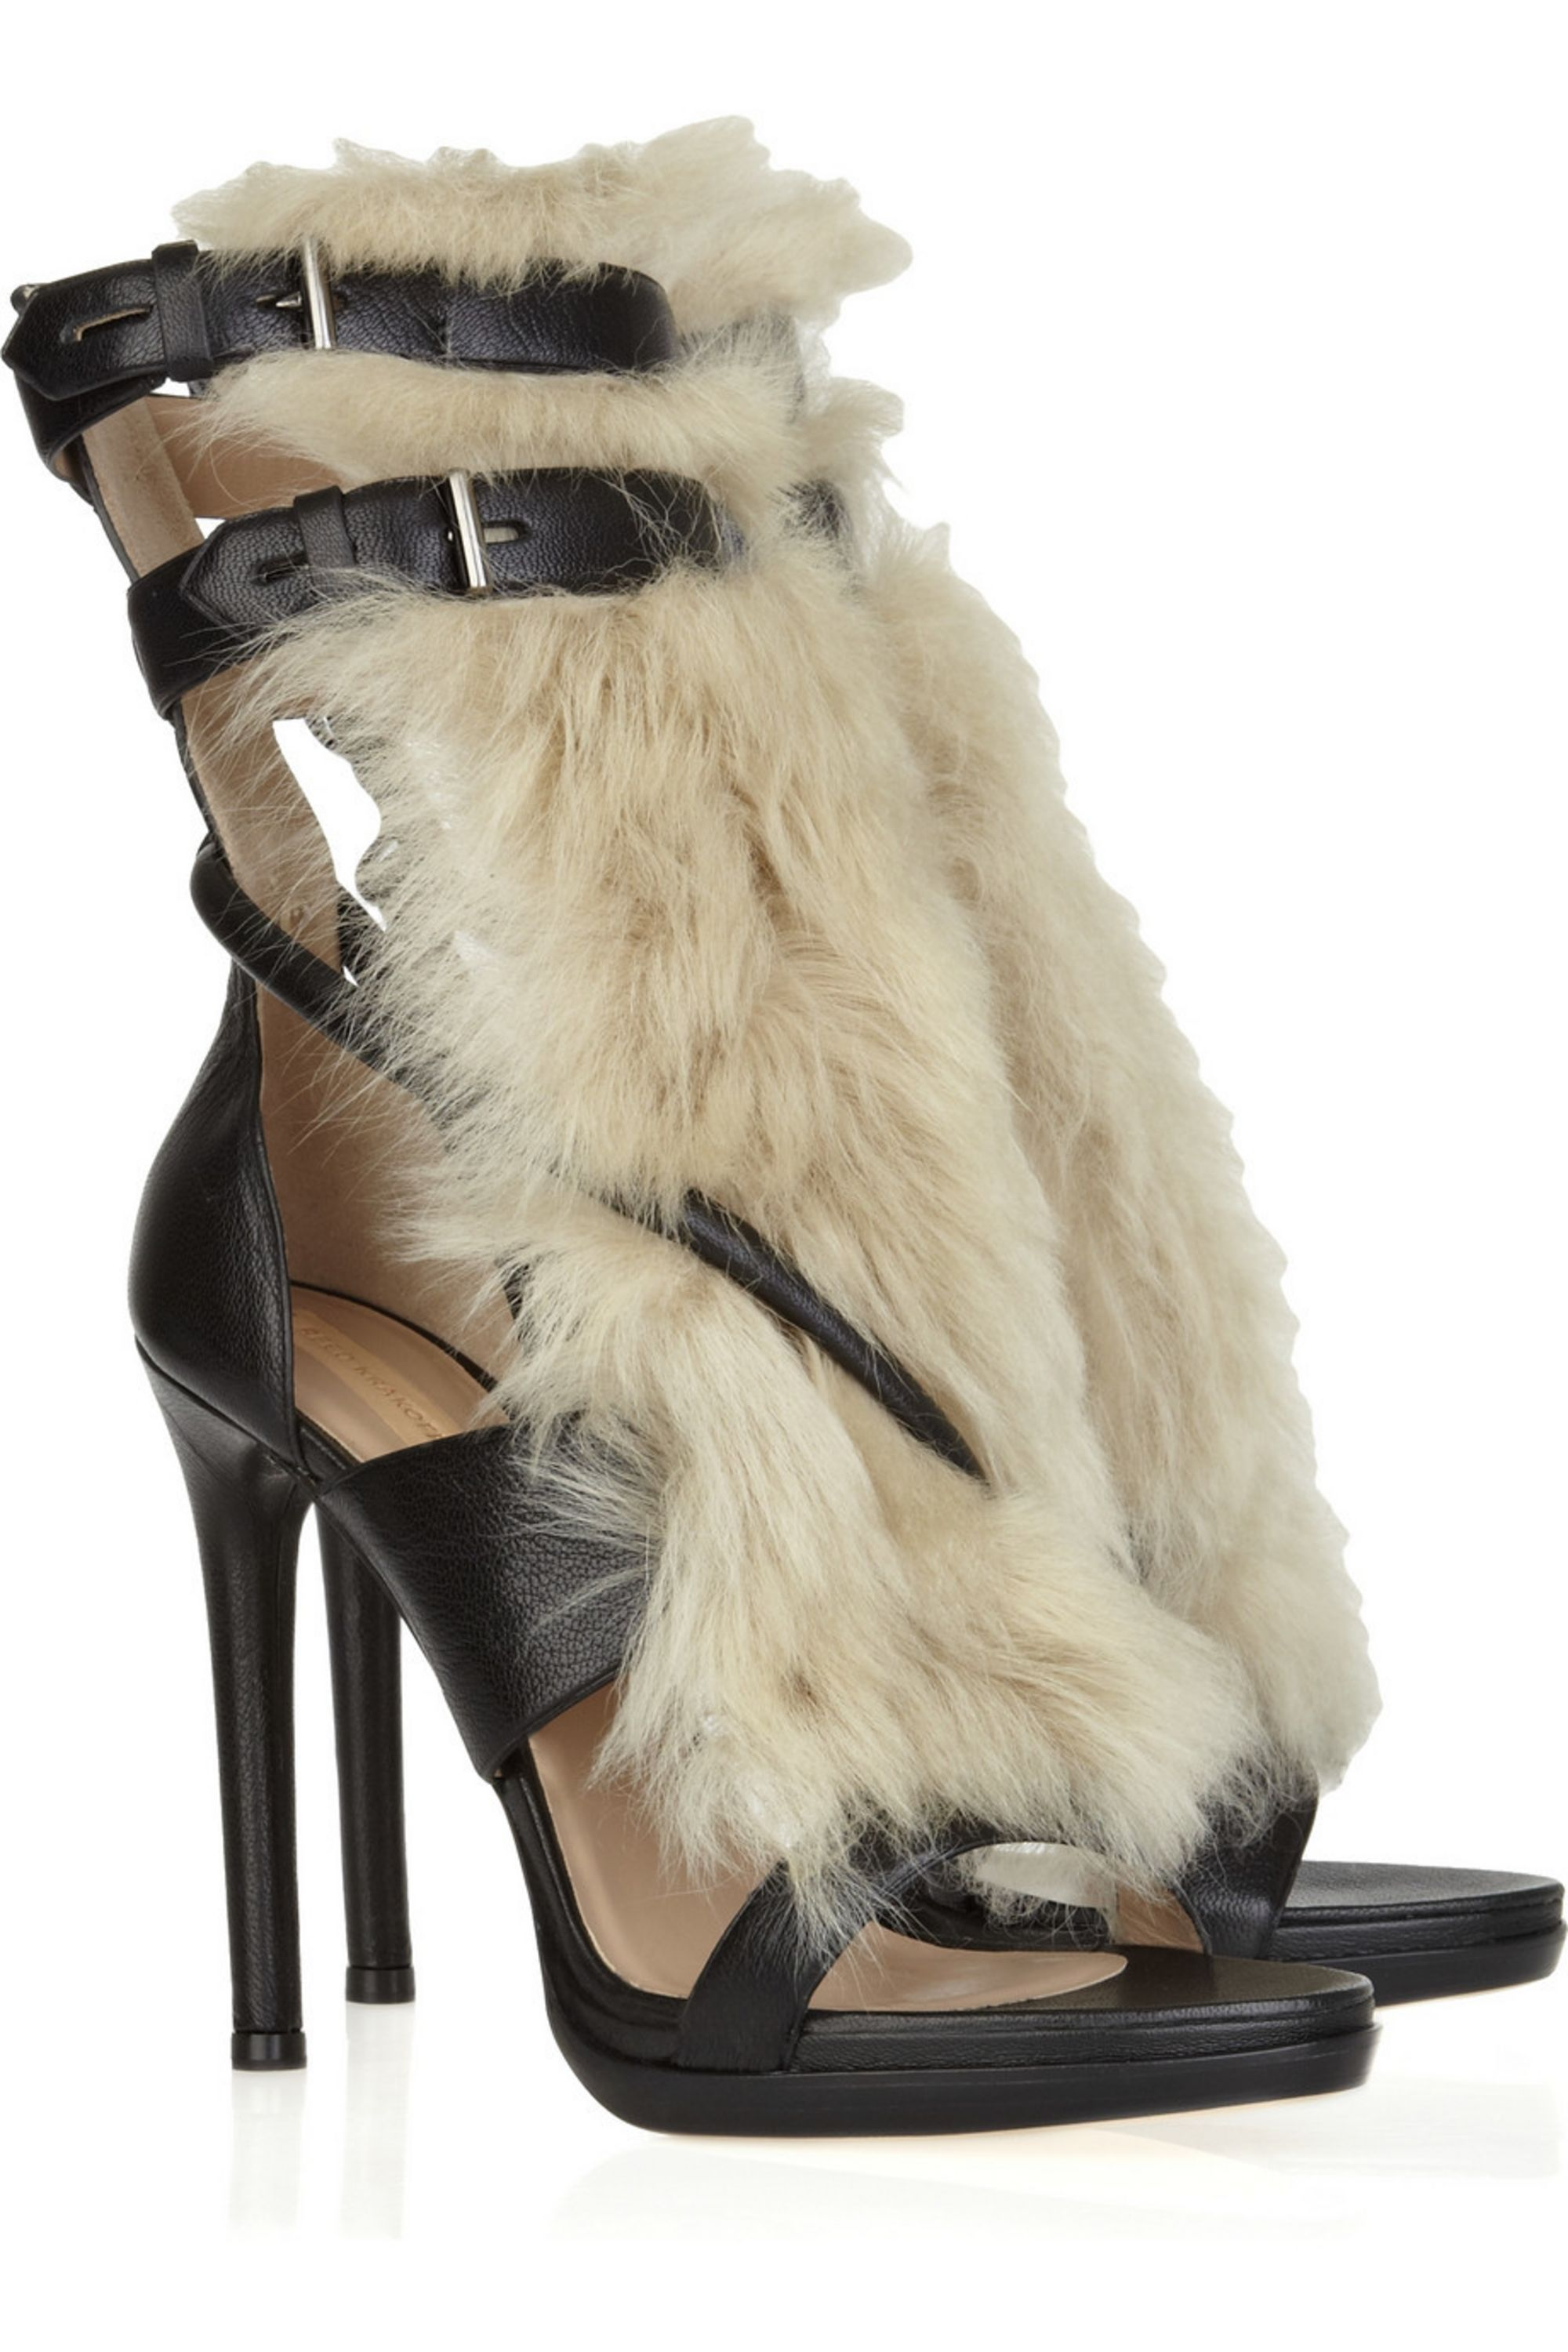 Reed Krakoff Leather and shearling sandals